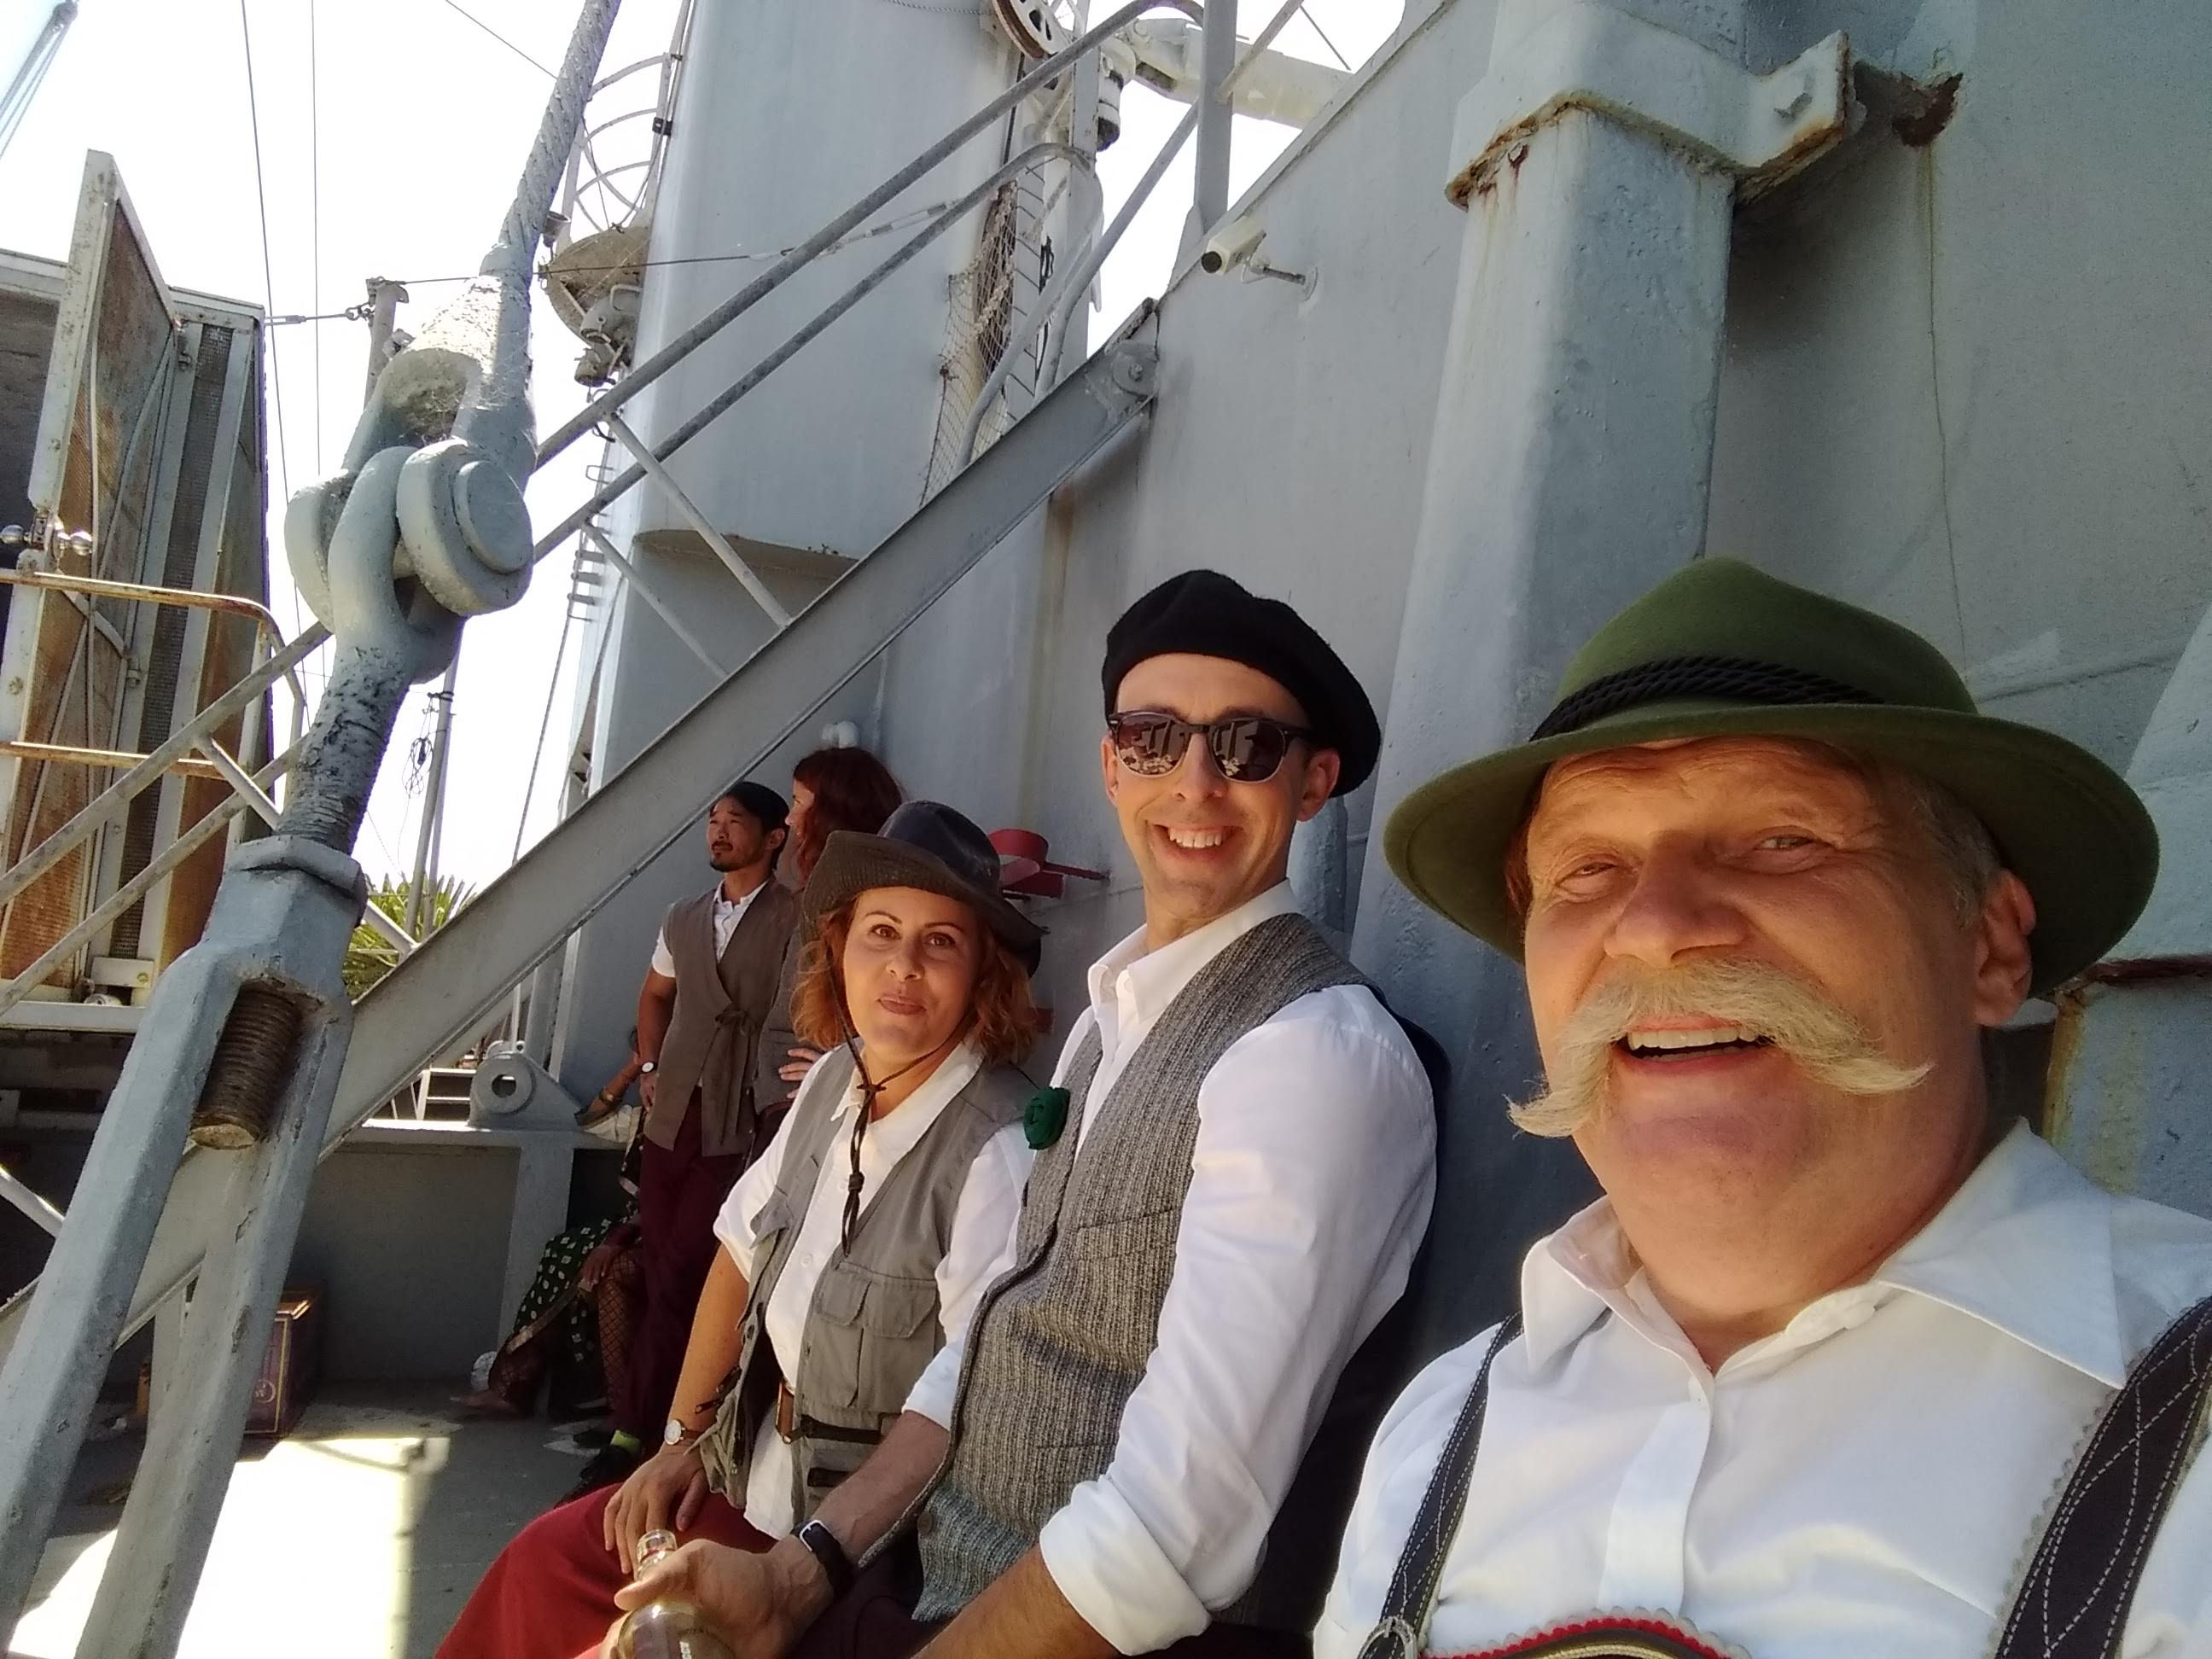 On a merchant marine ship